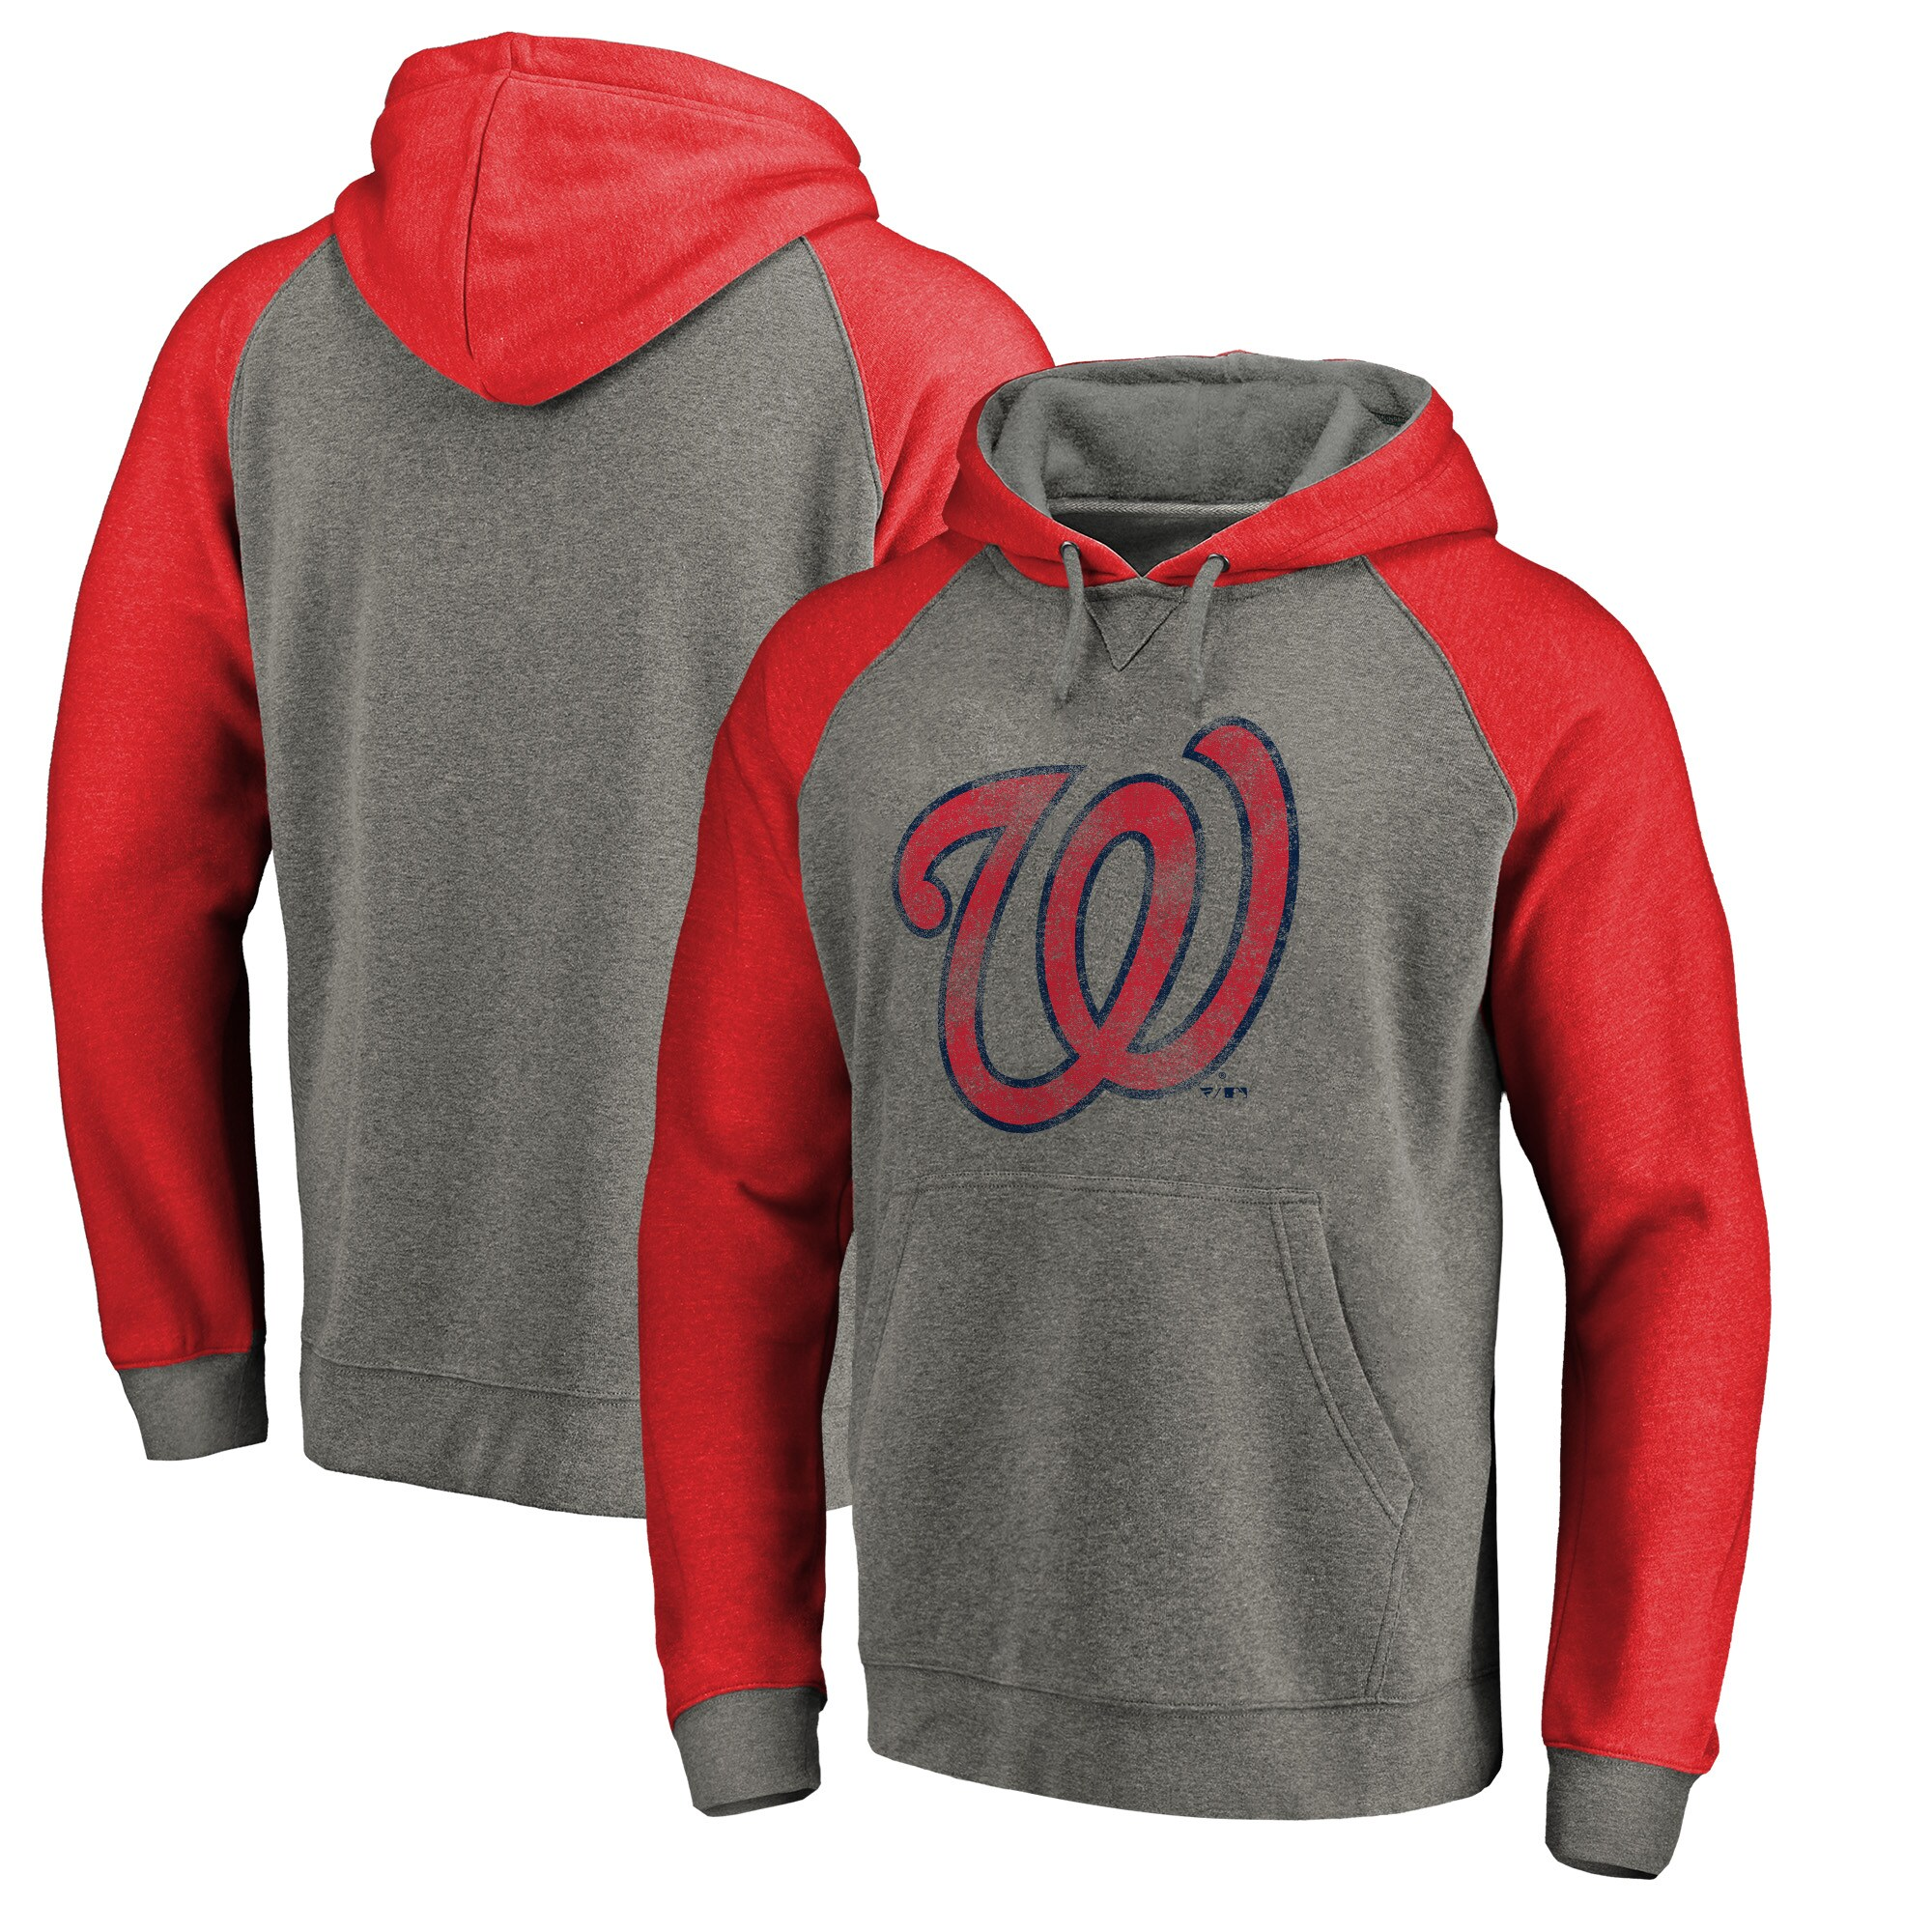 Washington Nationals Fanatics Branded Distressed Team Logo Tri-Blend Big & Tall Raglan Pullover Hoodie - Gray/Red